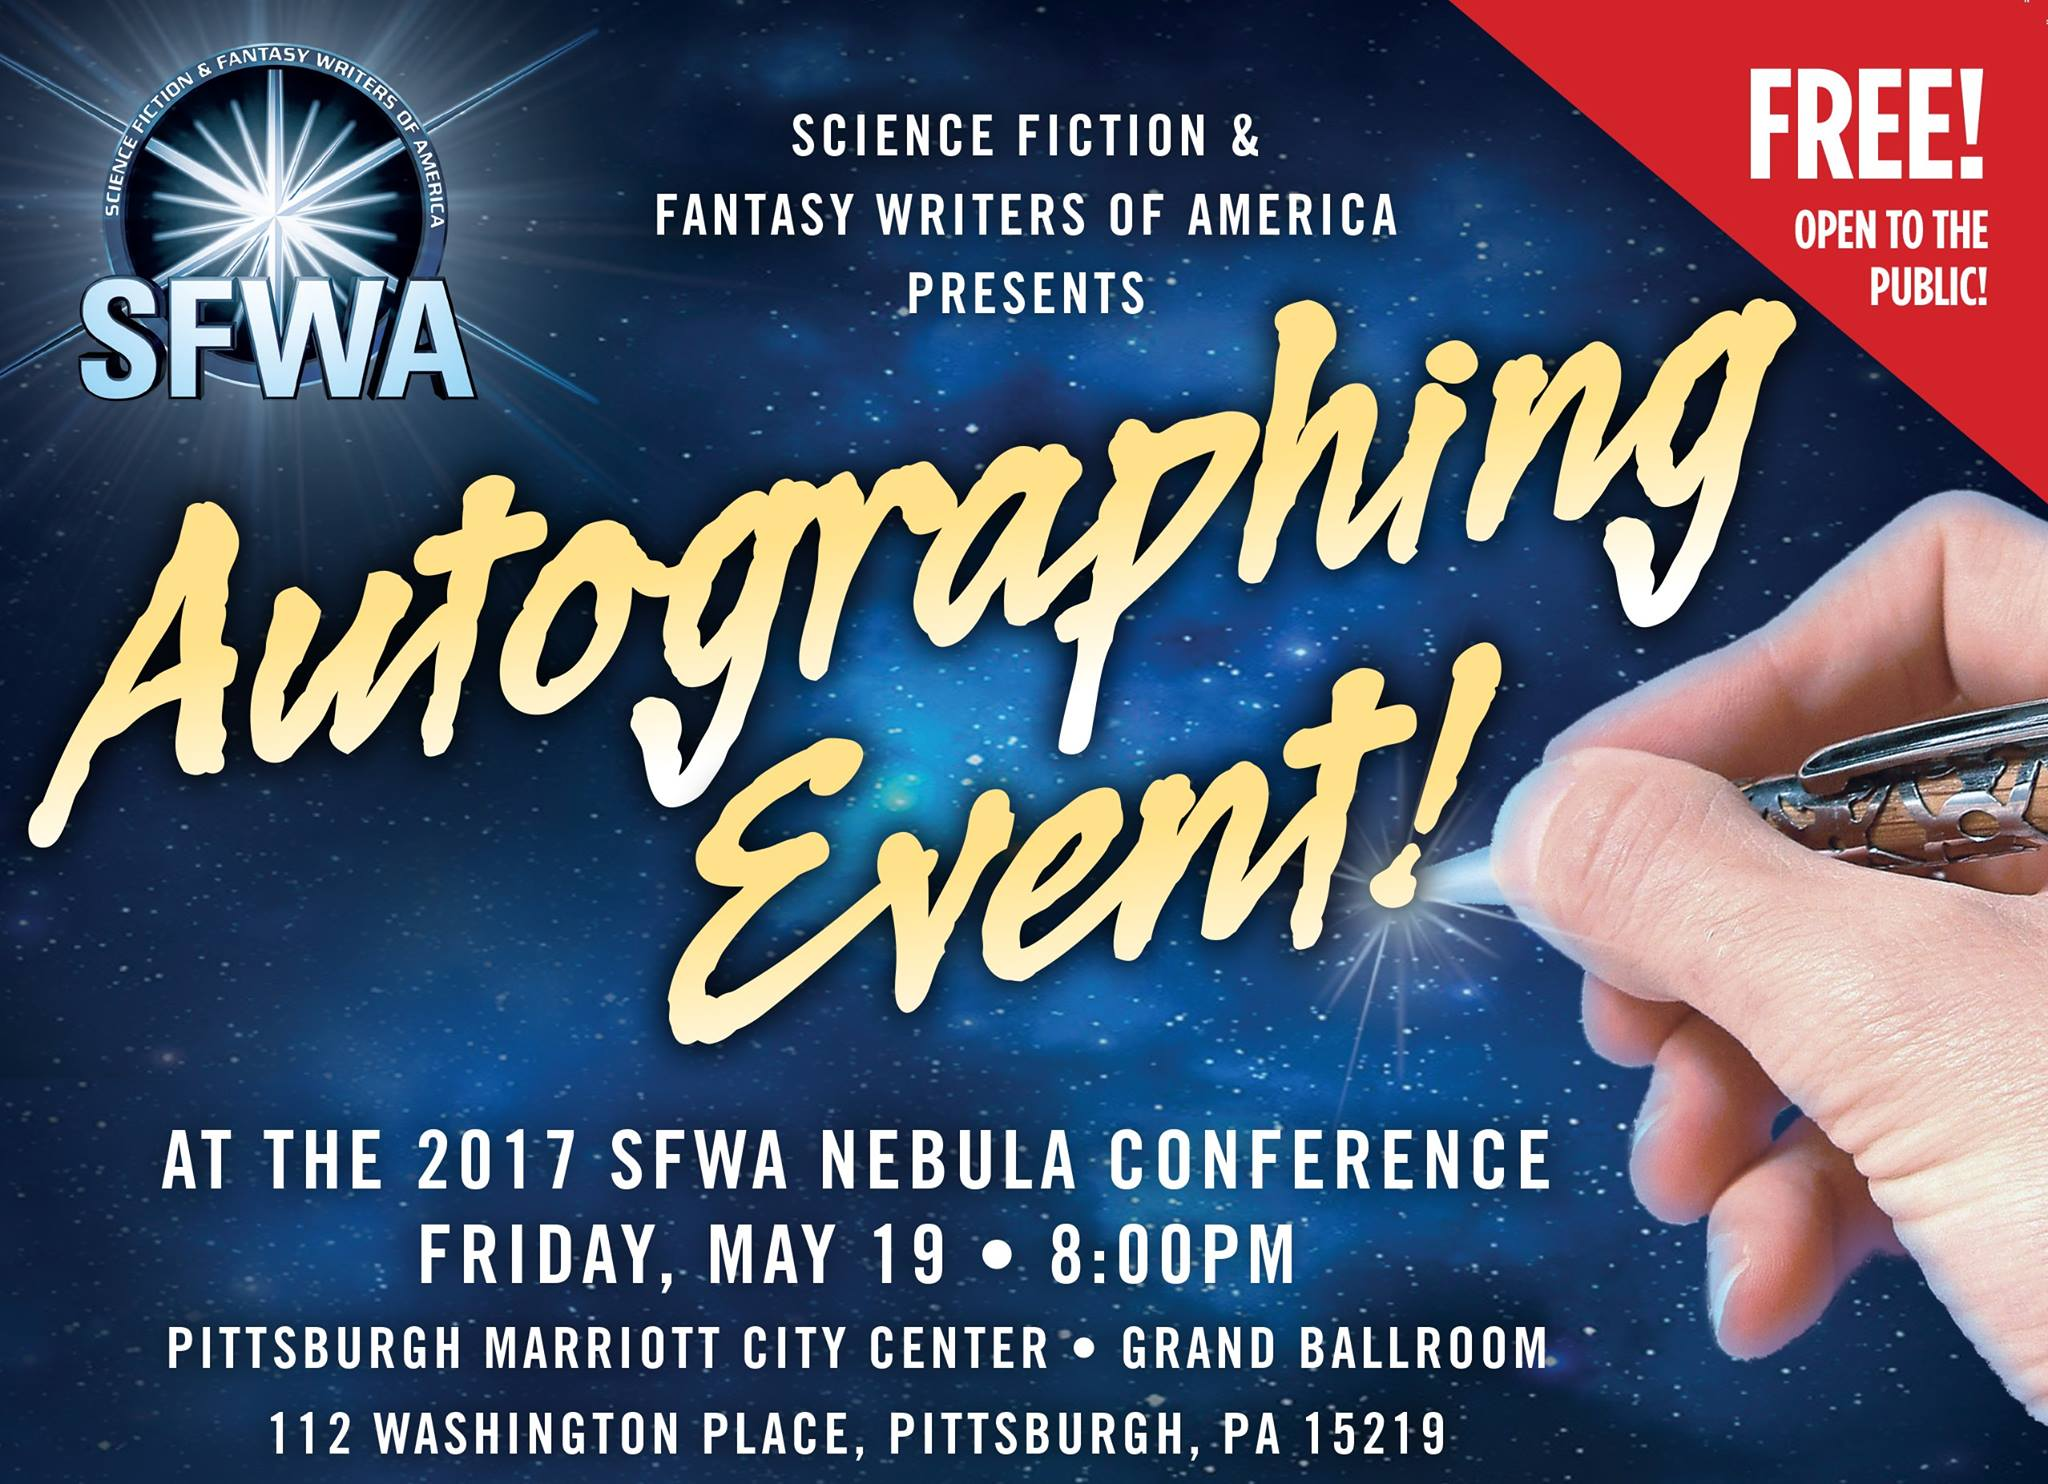 SFWA Mass Autographing Event